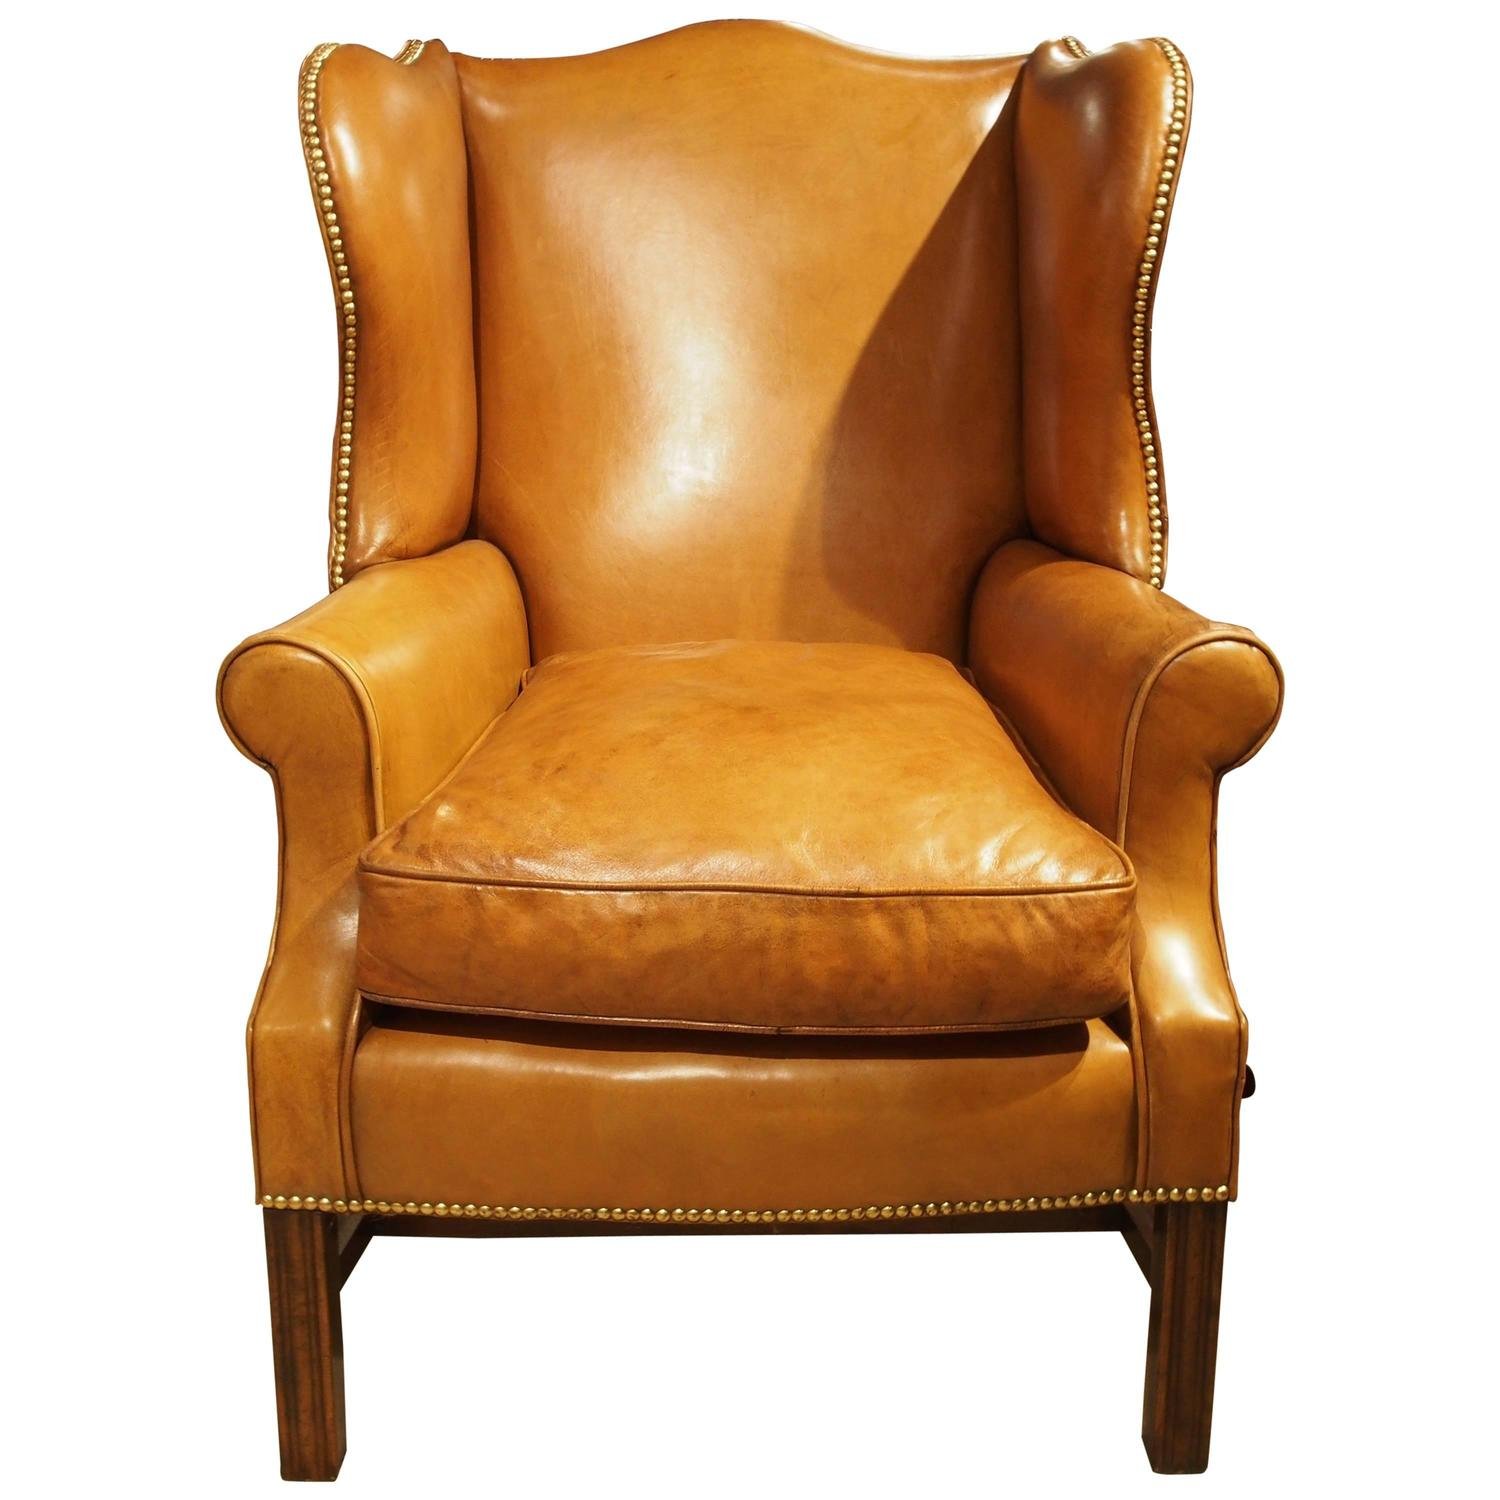 Sudbury Wing Chair For Sale at 1stdibs